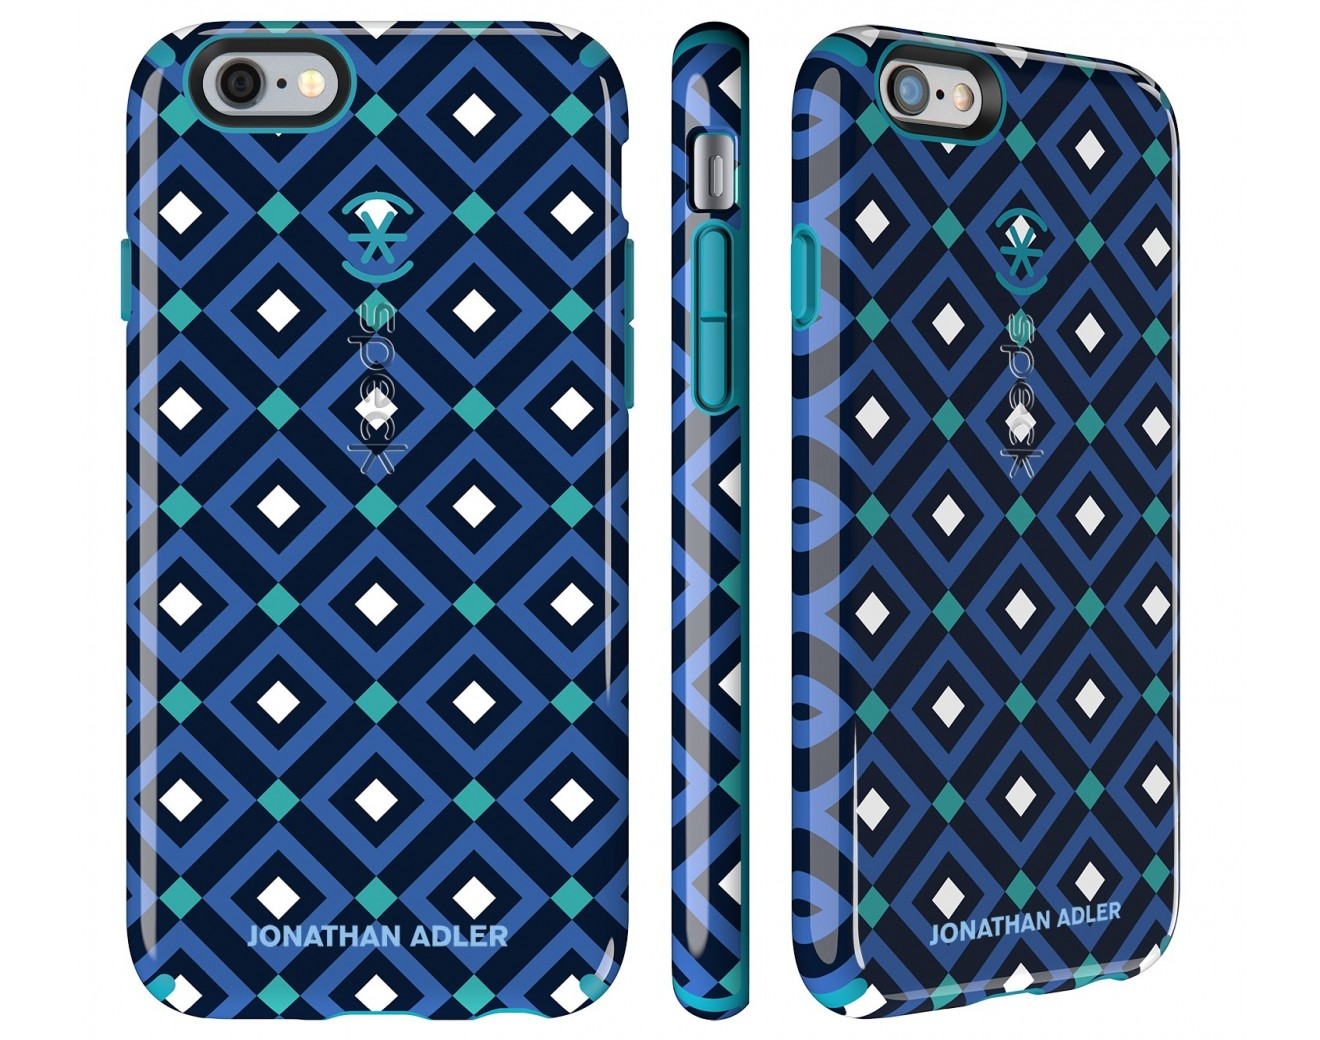 Калъф Speck CandyShell Johnatan Adler за iPhone 6/6S - Blue